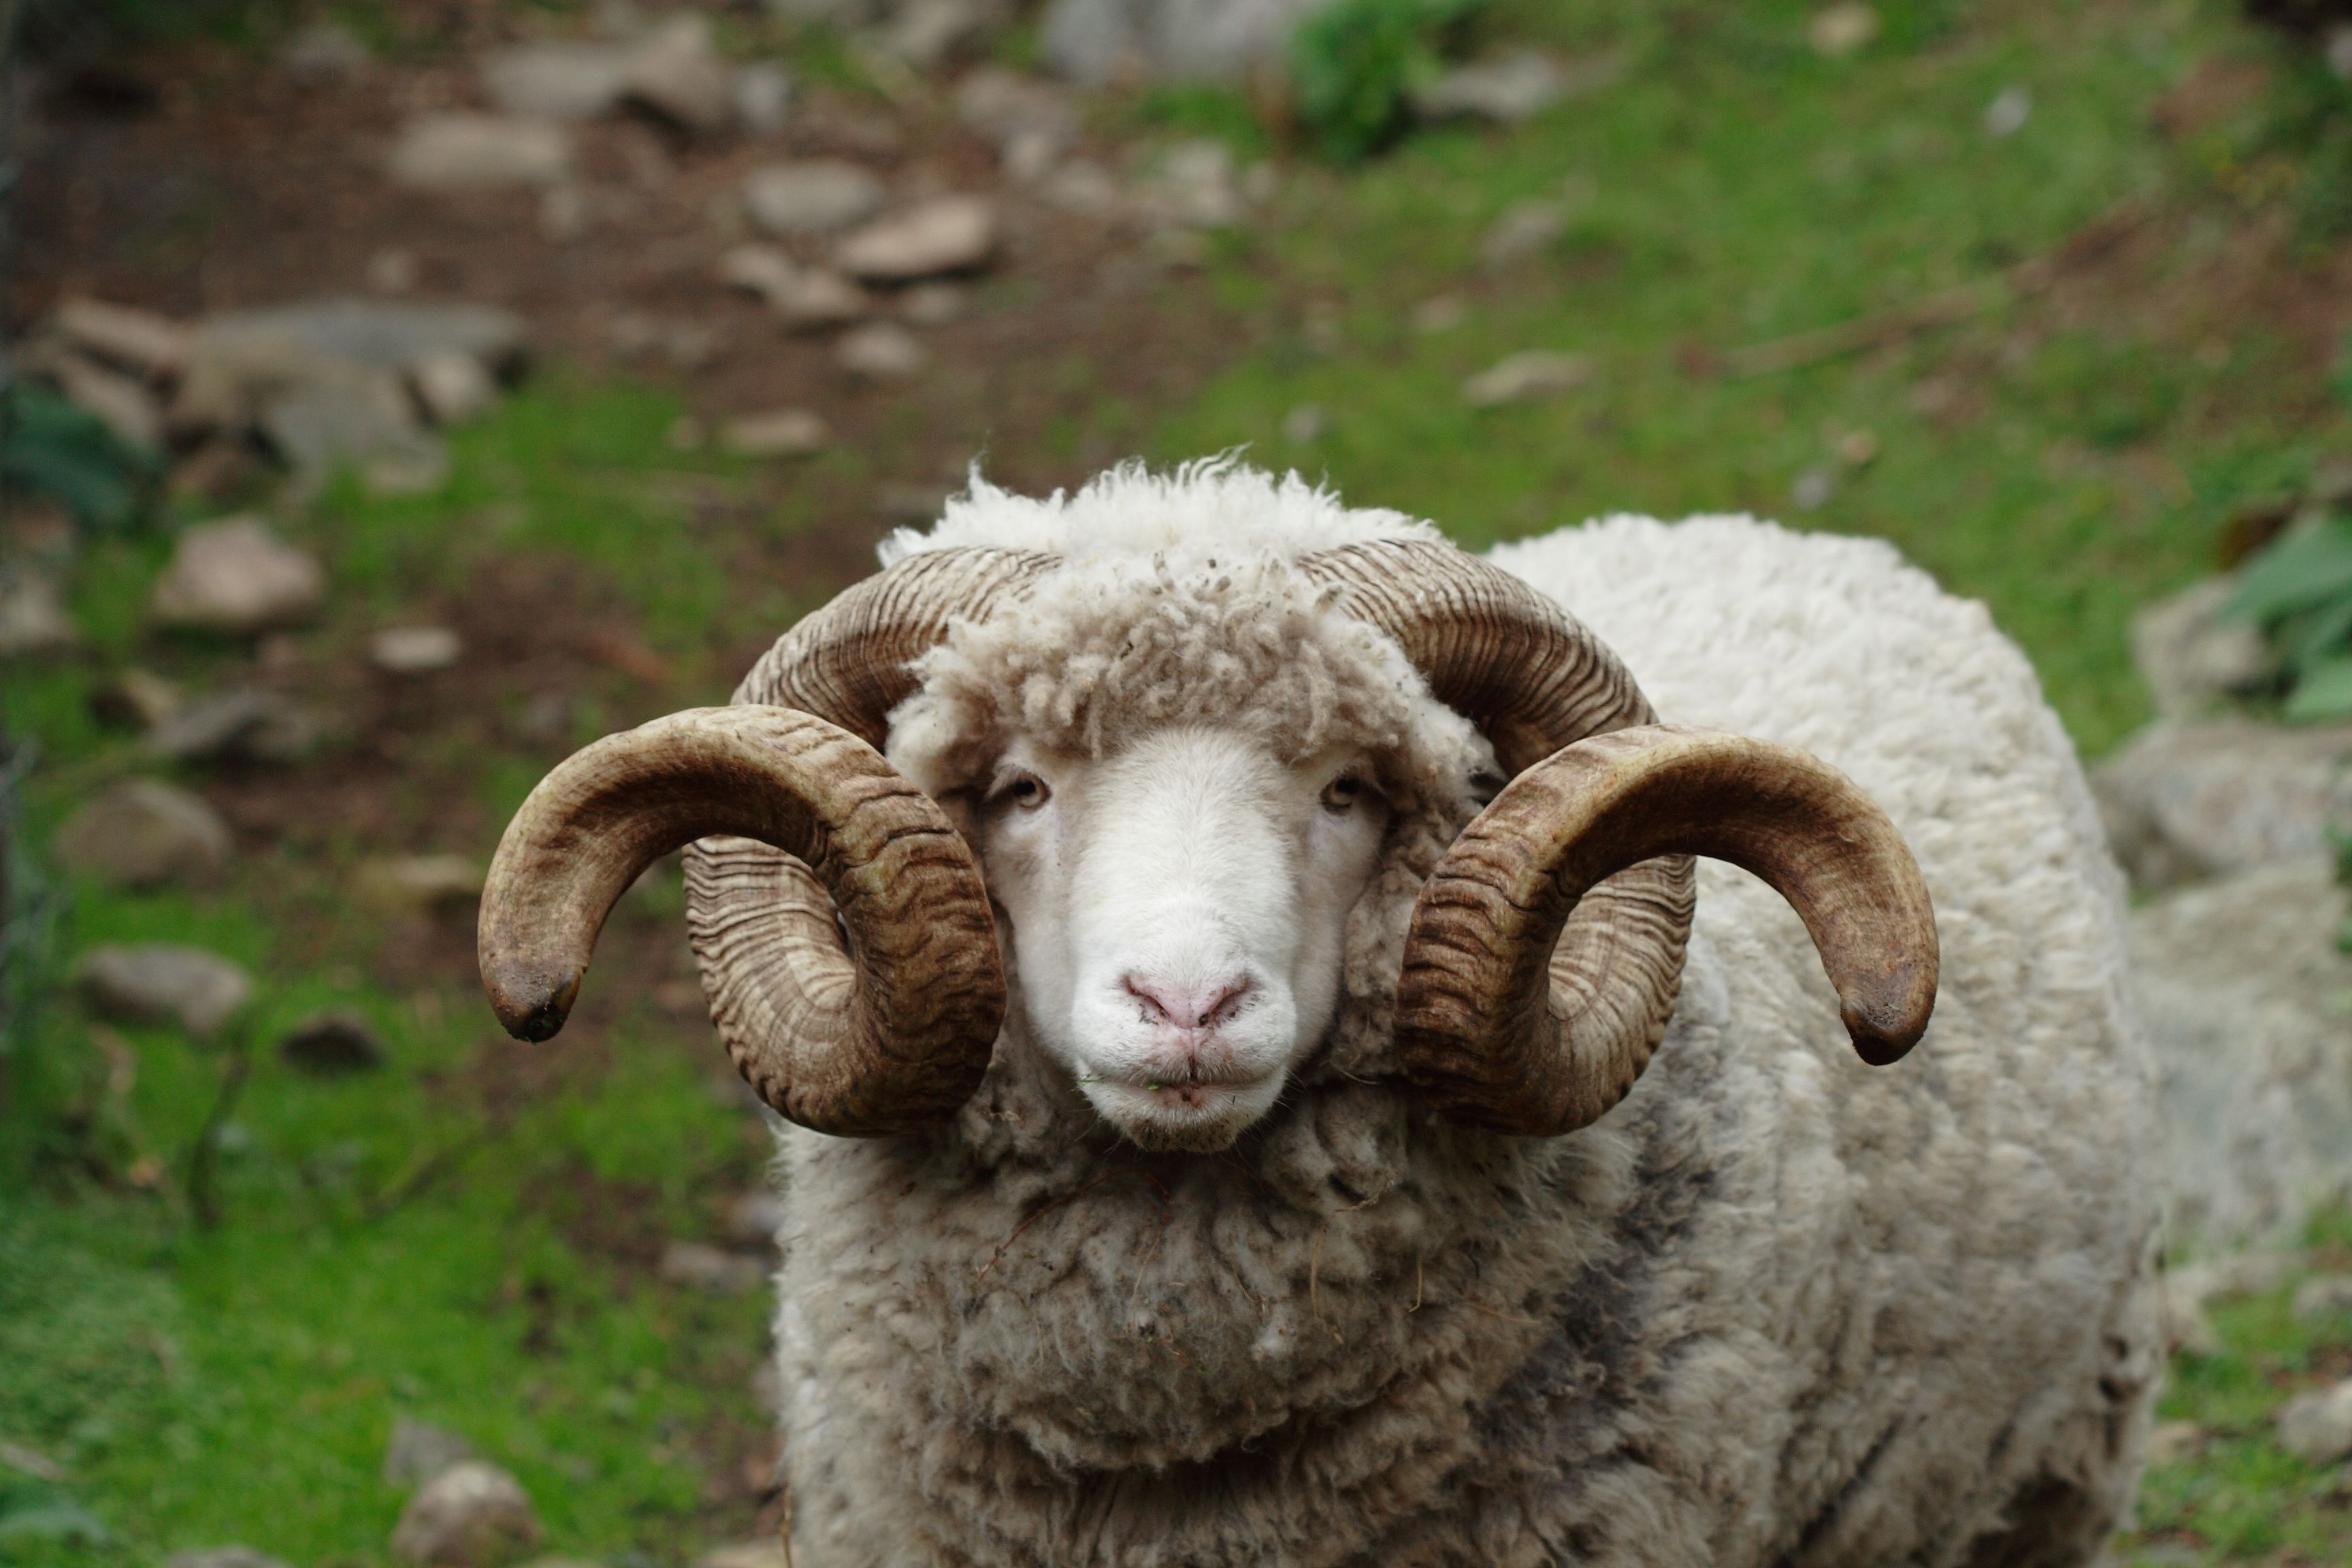 The Arapawa Sheep is a breed of feral sheep found